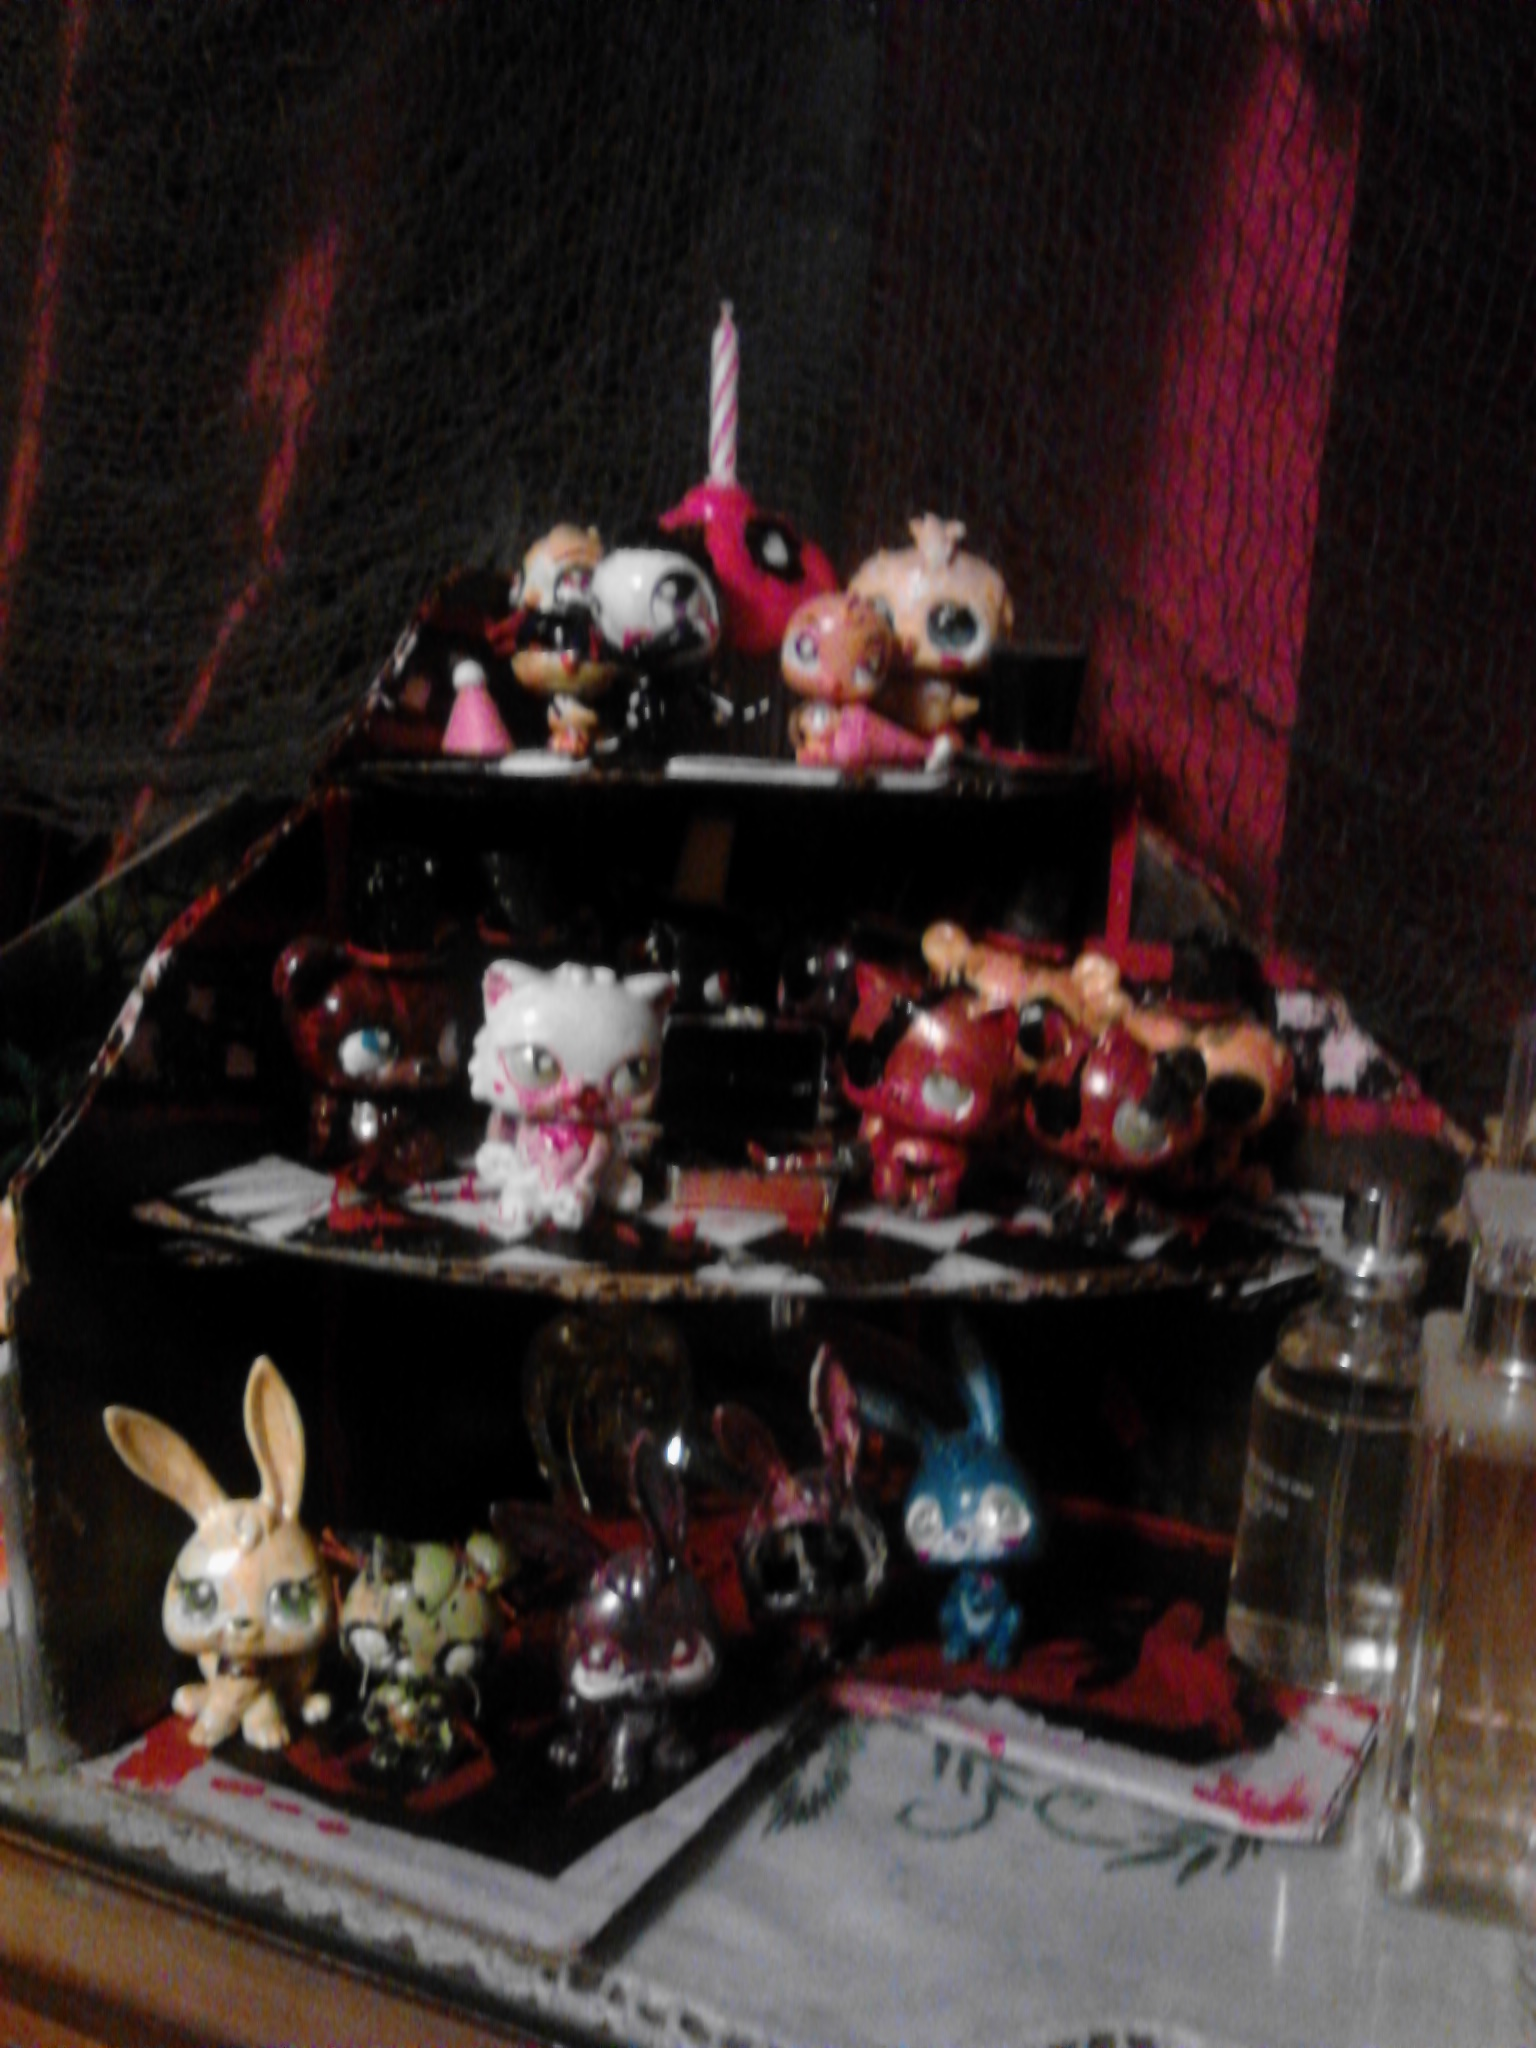 2048 Fnaf Keep Five Nights At Freddy S Going Images Fnaf Shelf Filled Hd